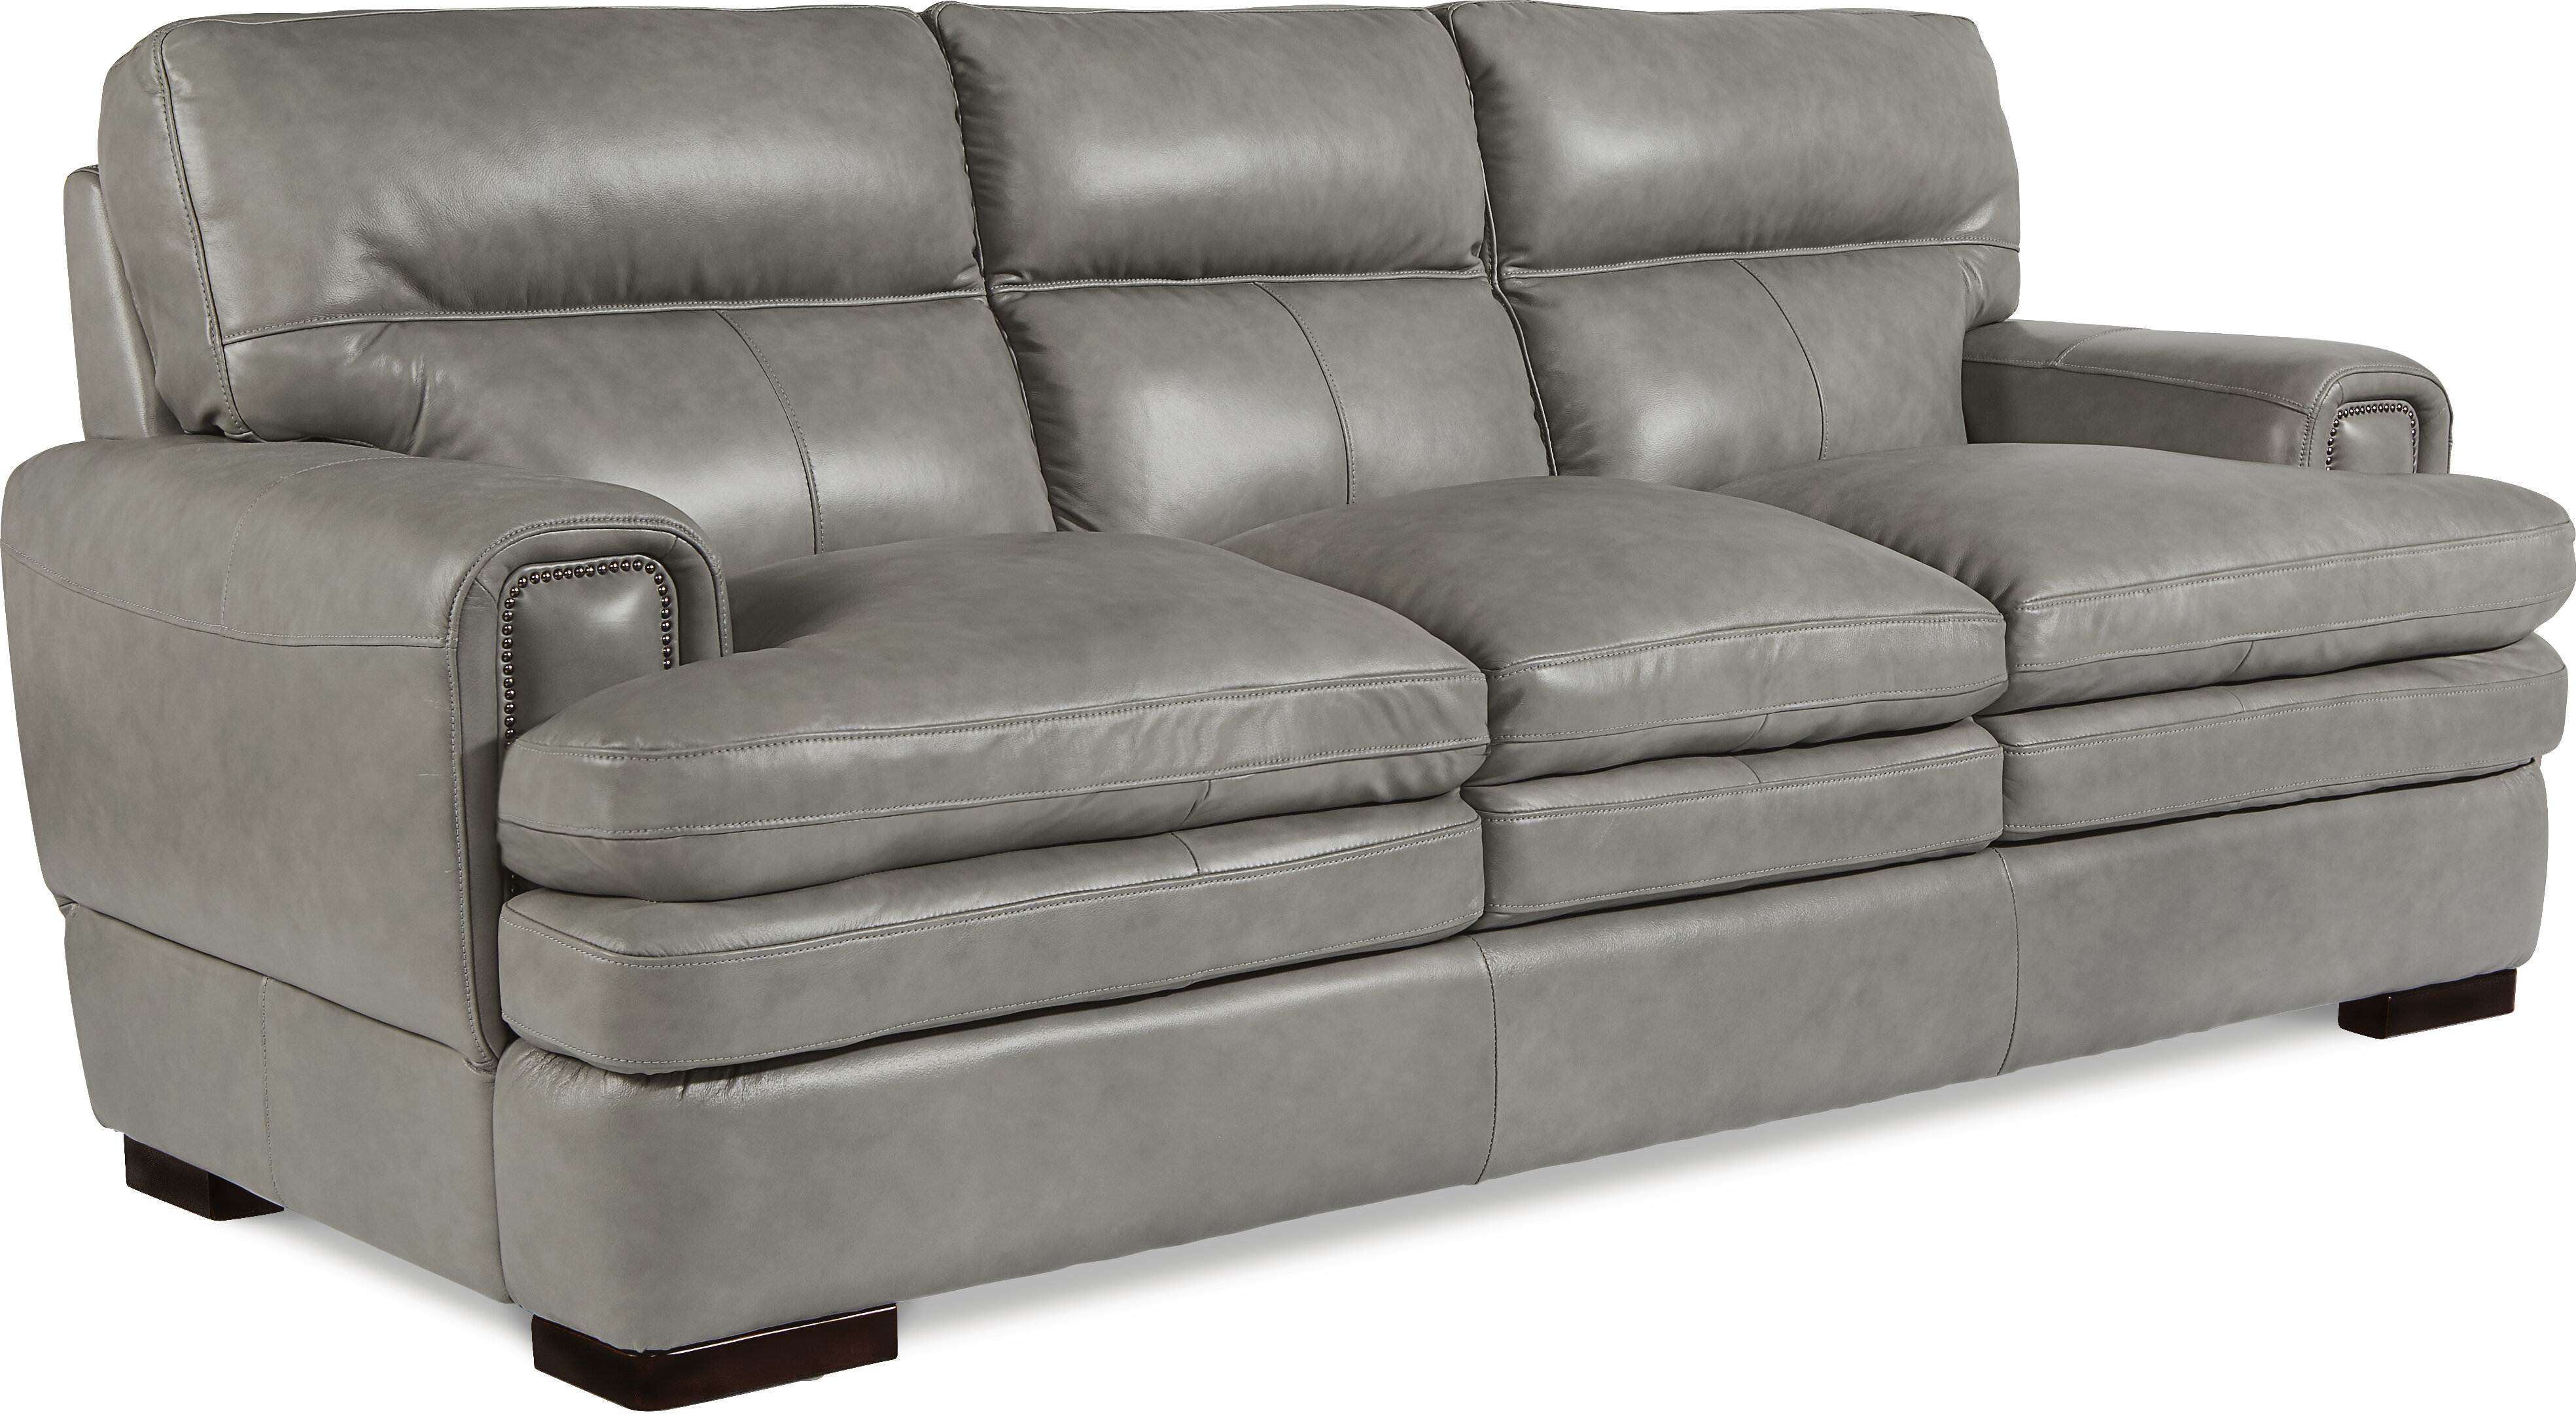 Leather Sofa Lazy Boy Lazy Boy Dexter Sofa Leather